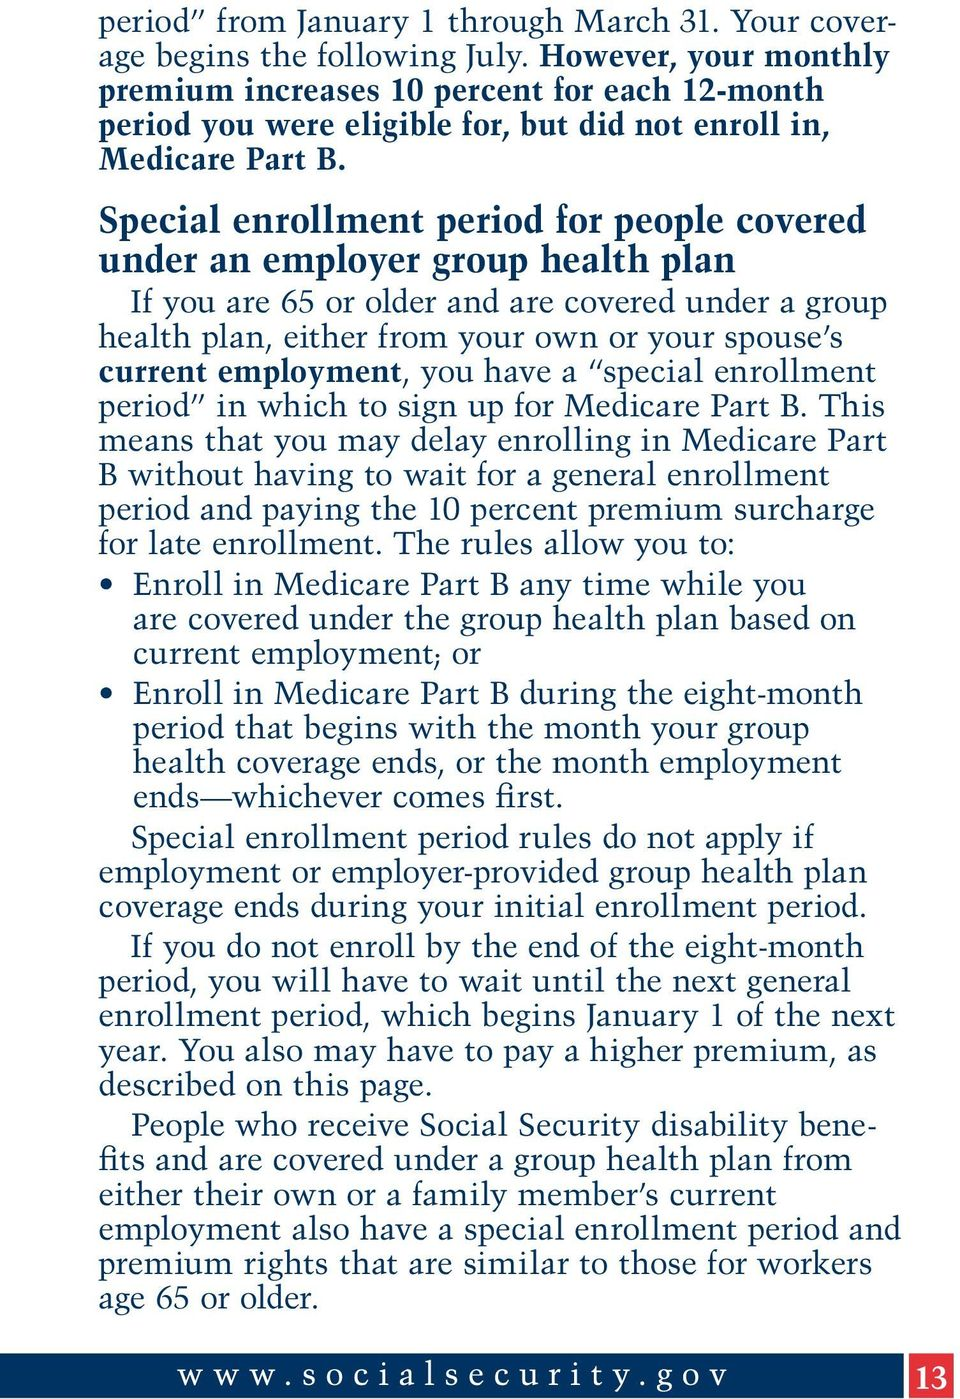 Special enrollment period for people covered under an employer group health plan If you are 65 or older and are covered under a group health plan, either from your own or your spouse s current